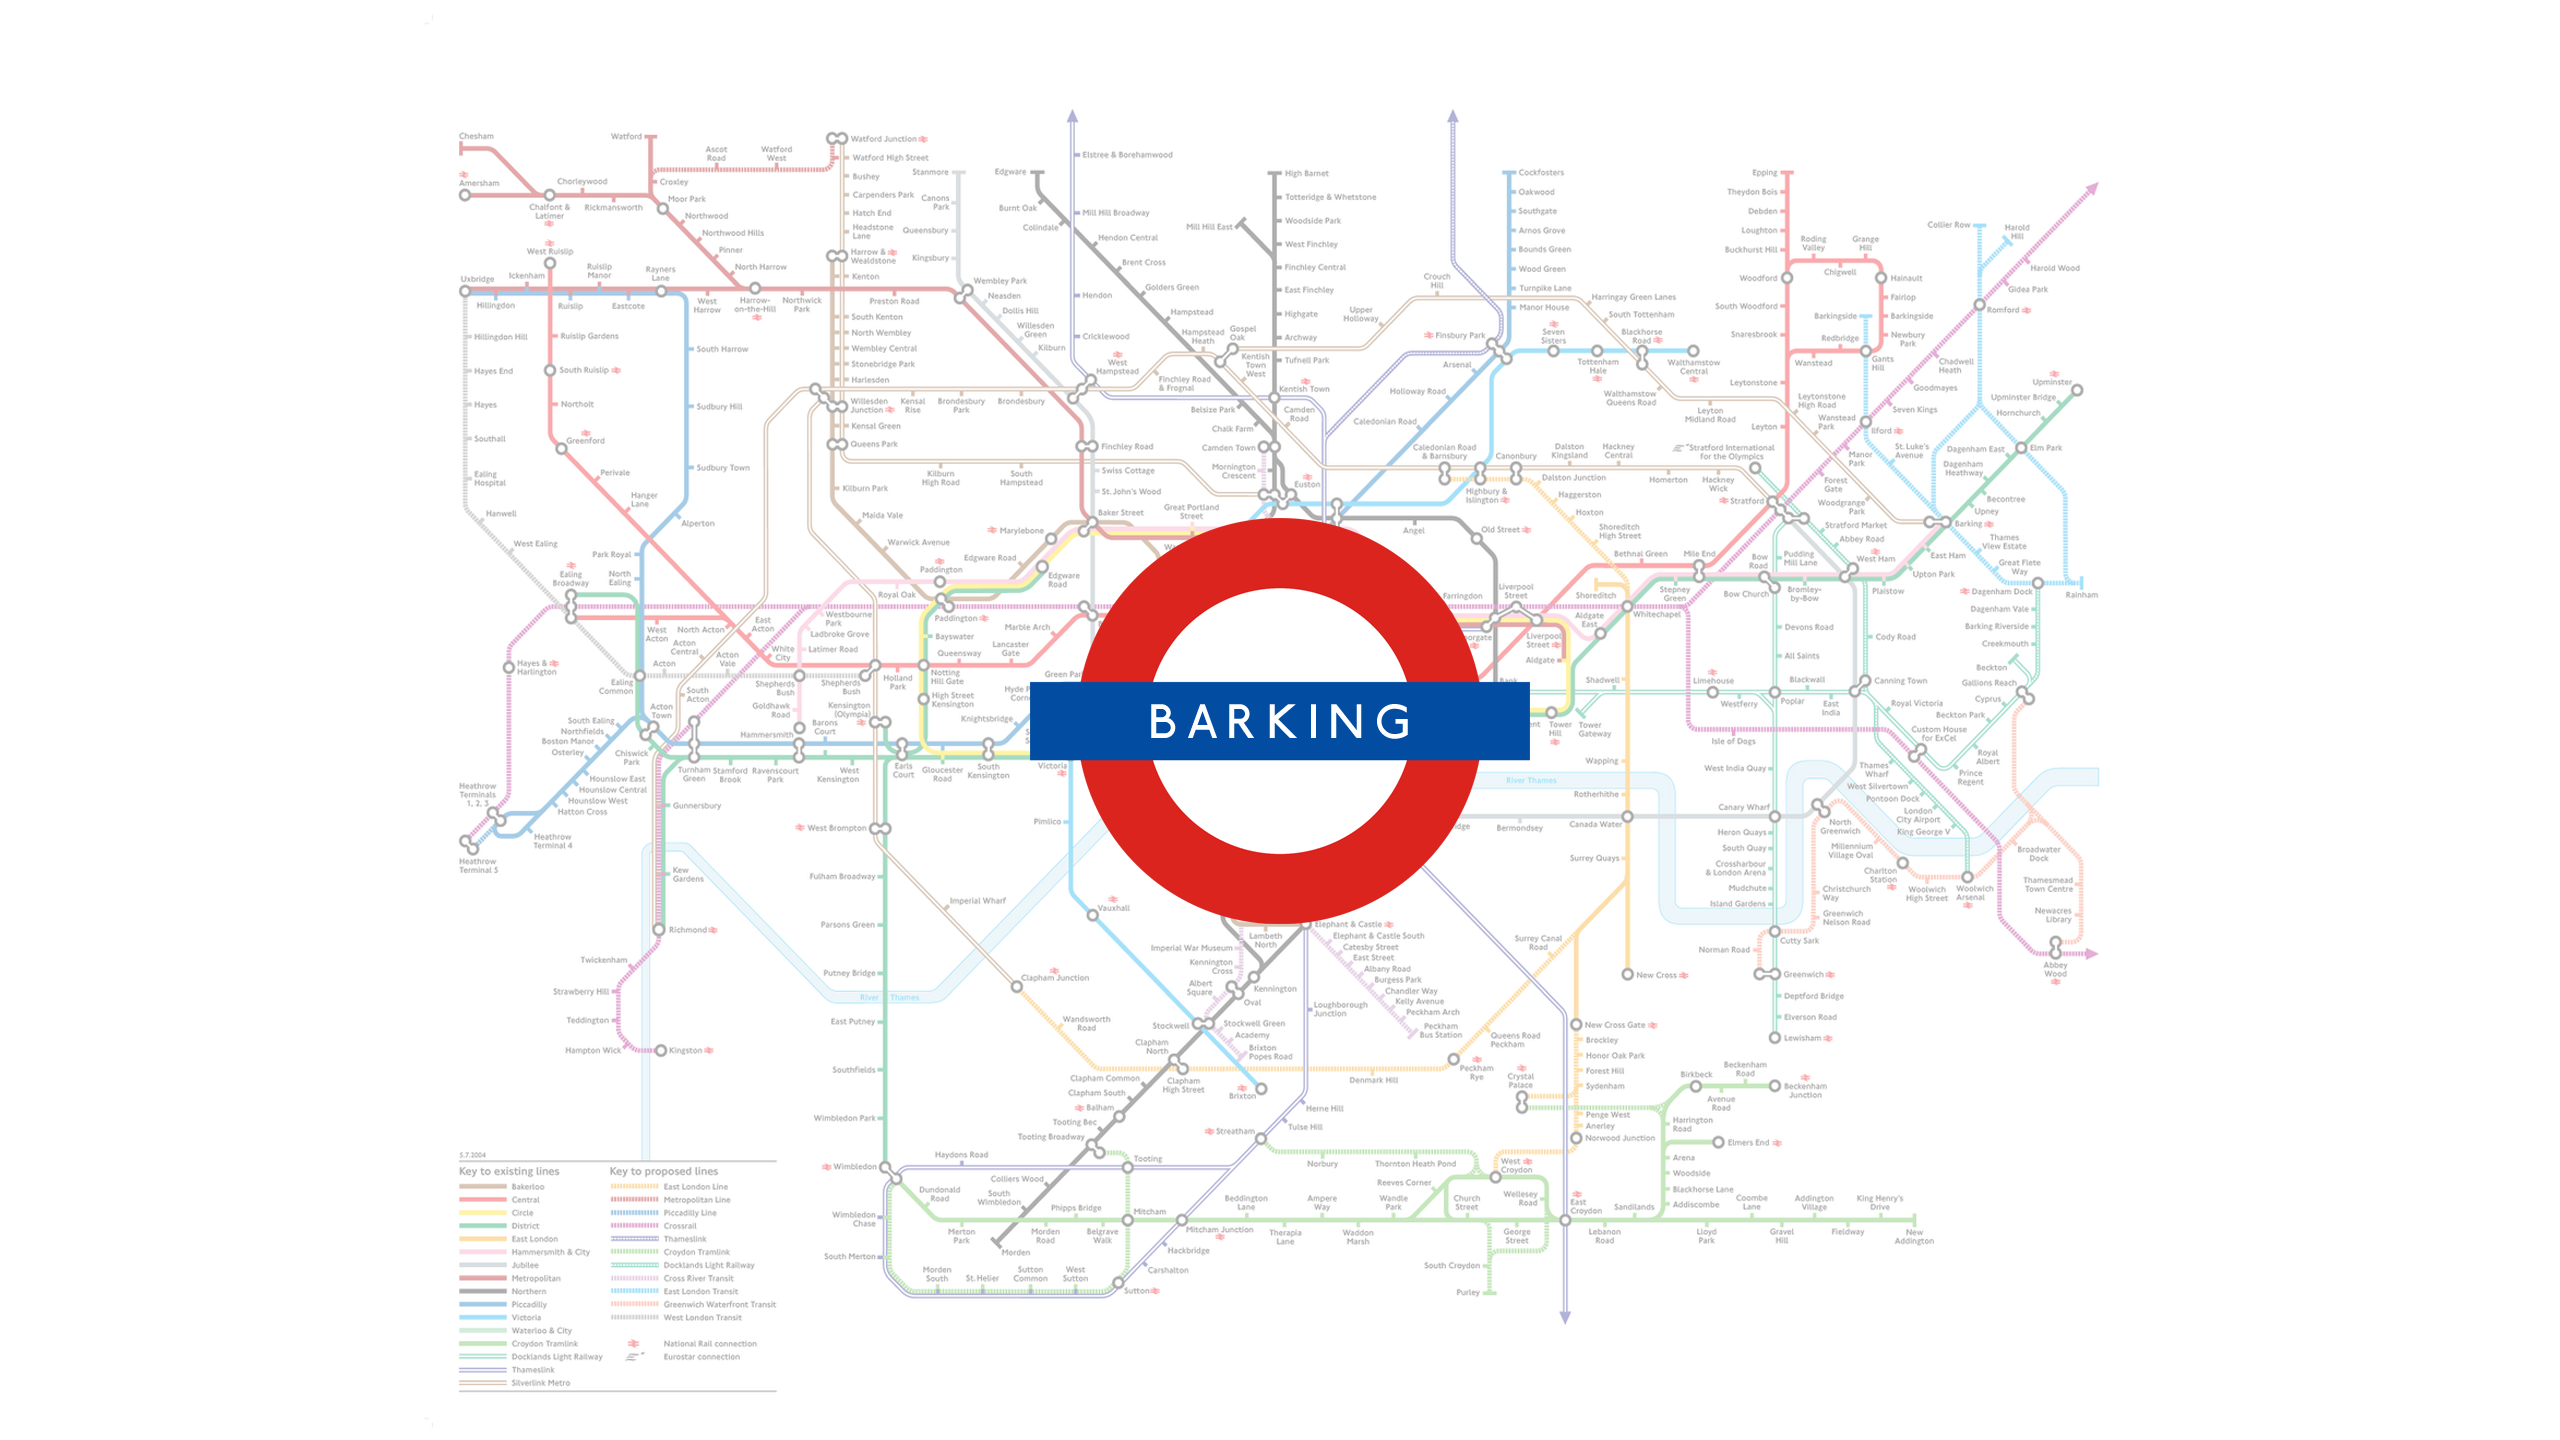 Barking (Map)